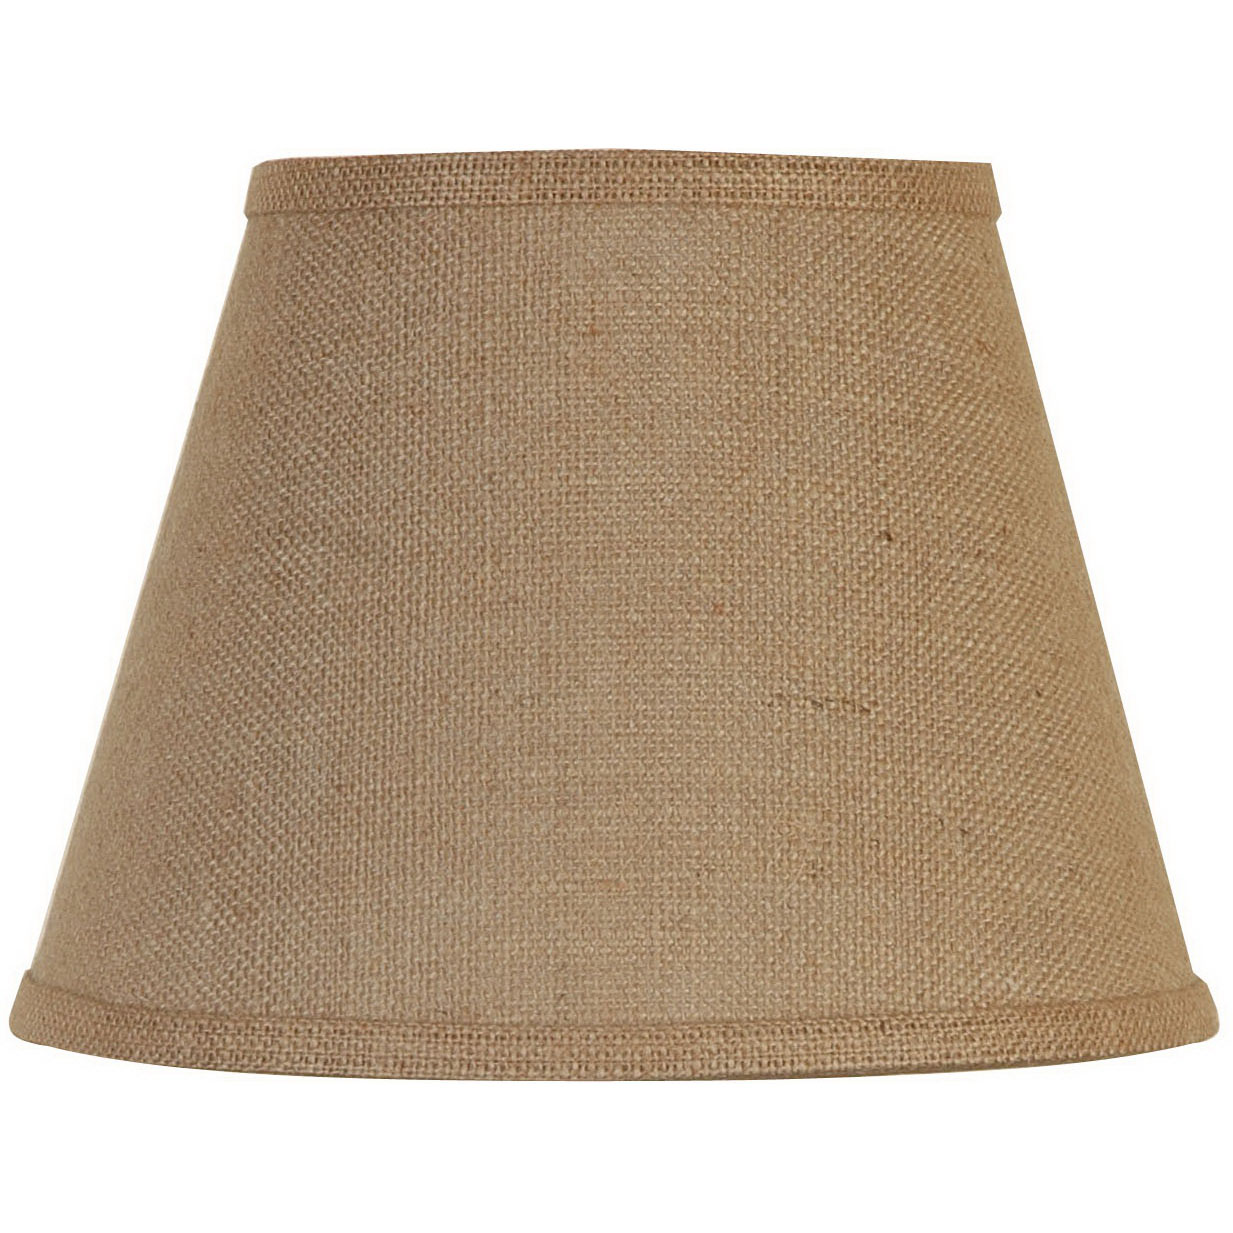 Better Homes and Gardens Burlap Accent Shade